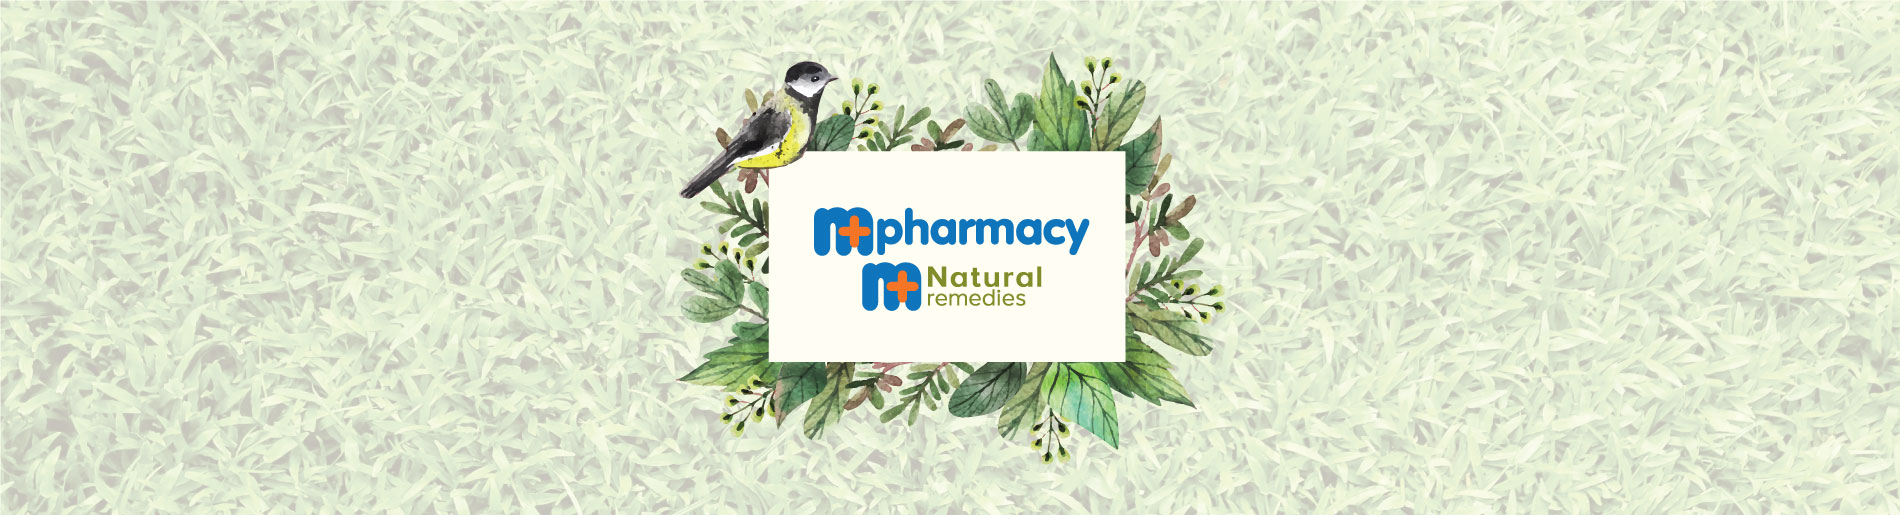 M+ Pharmacy & Natural Remedies